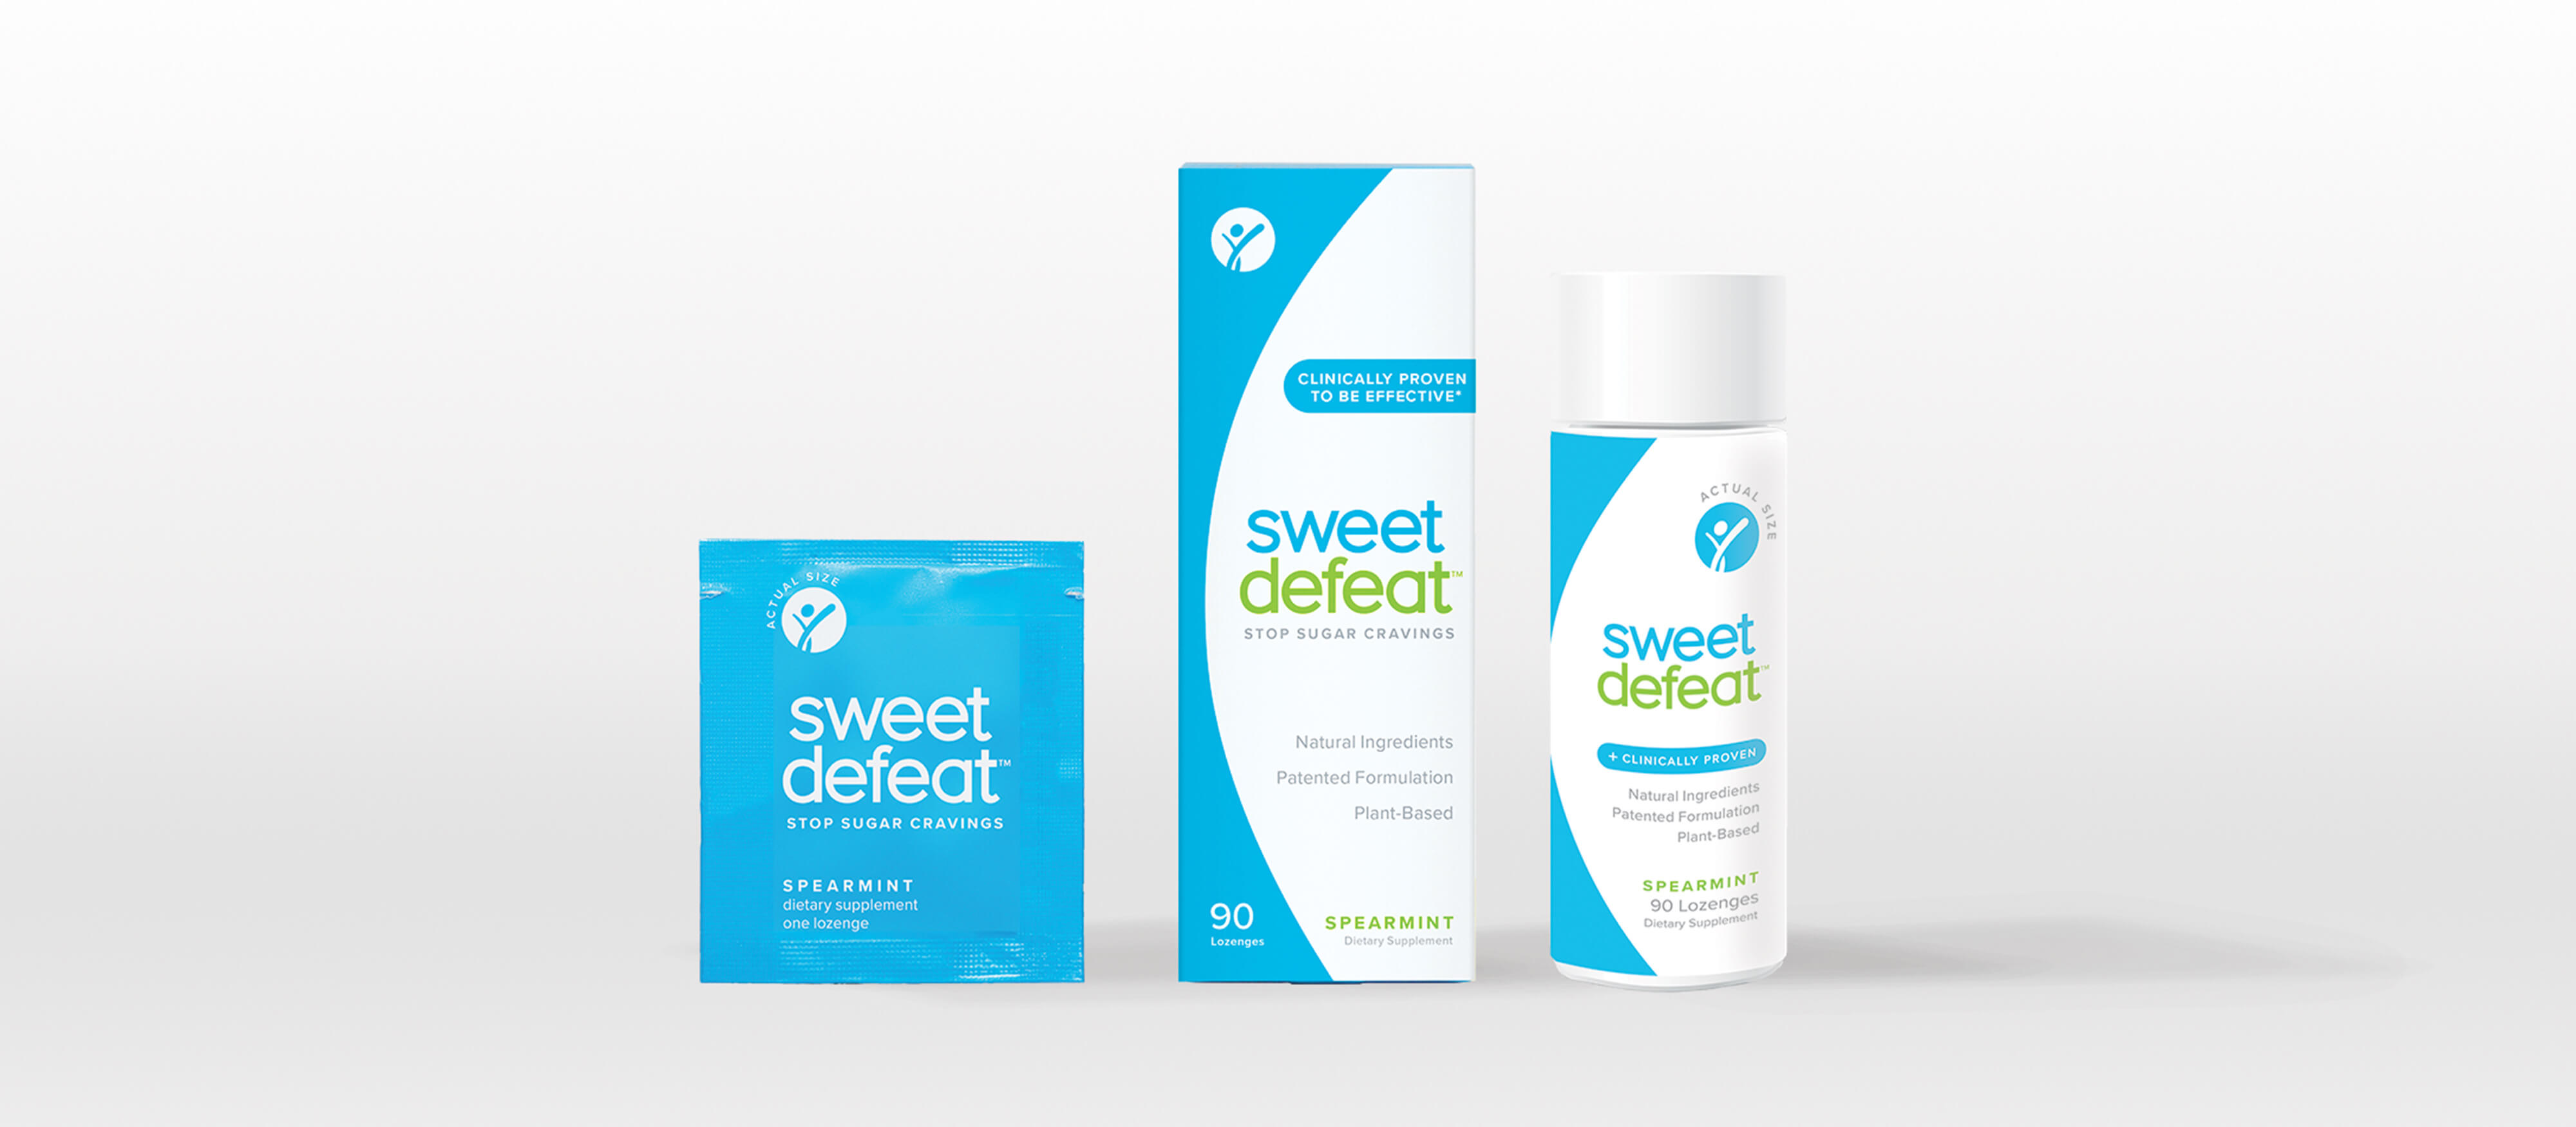 sweet defeat packaging design